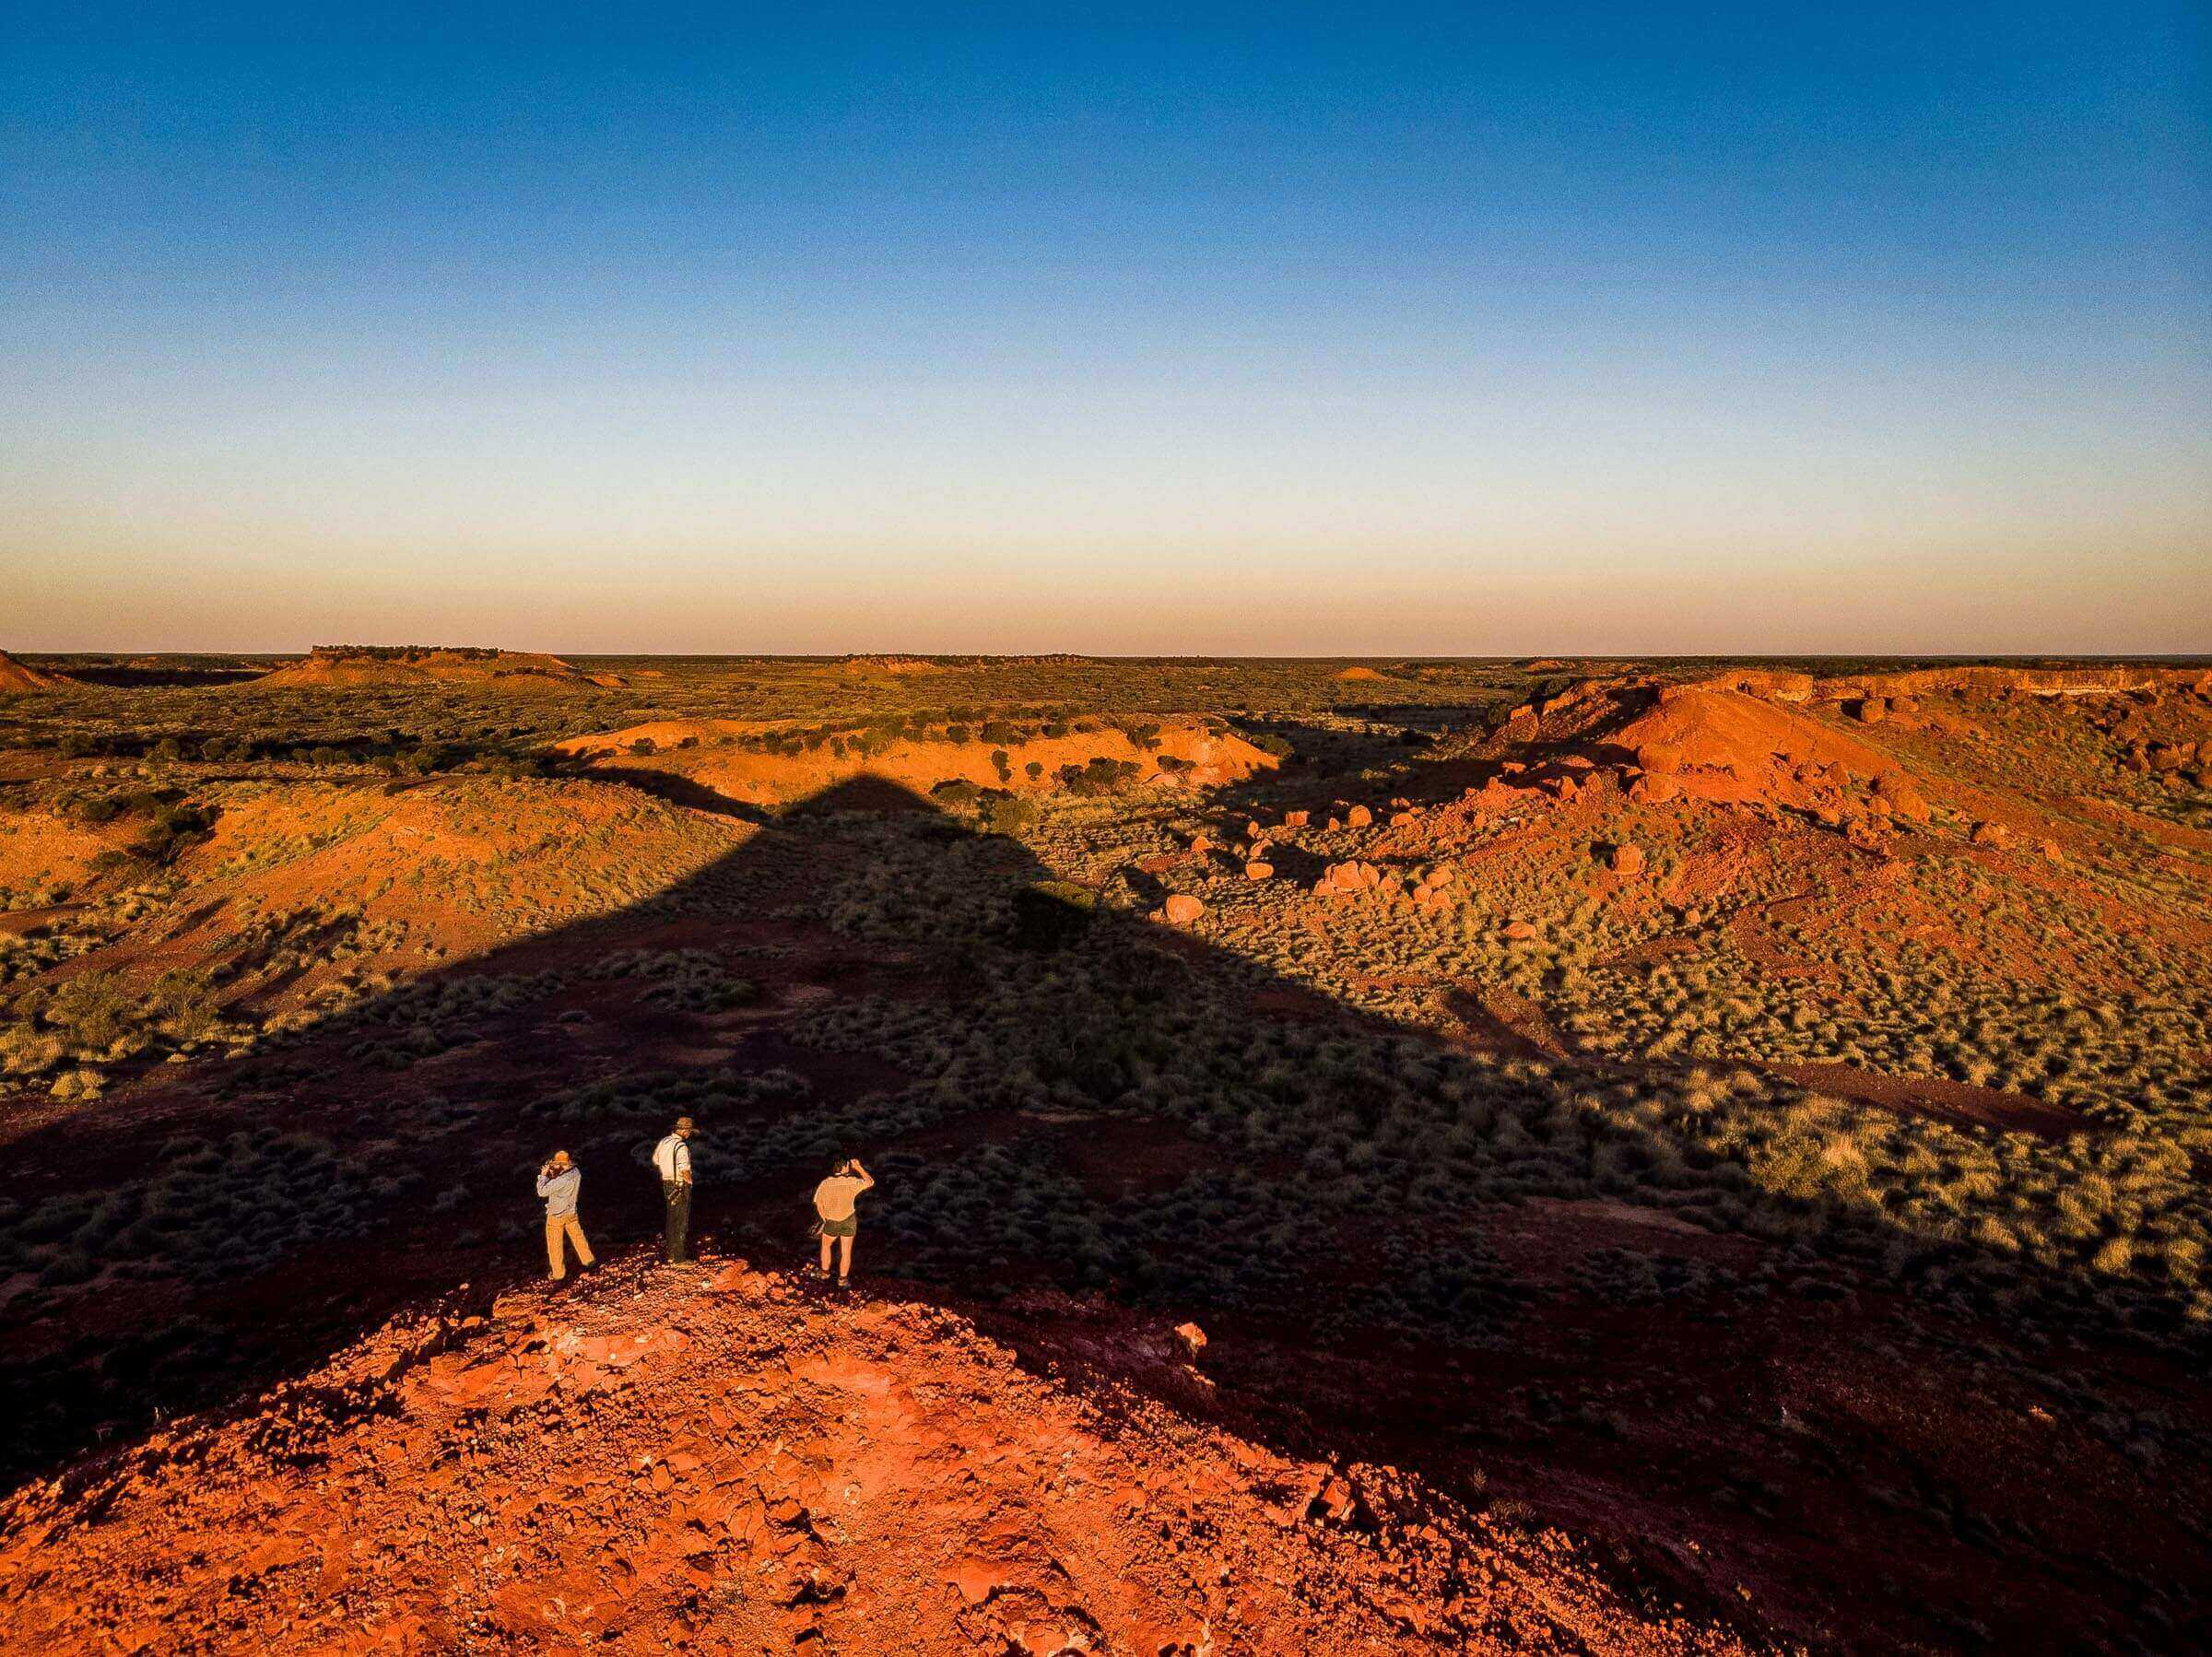 Searching for the elusive night parrot in the Pullen Pullen Night Parrot Reserve in outback Queensland